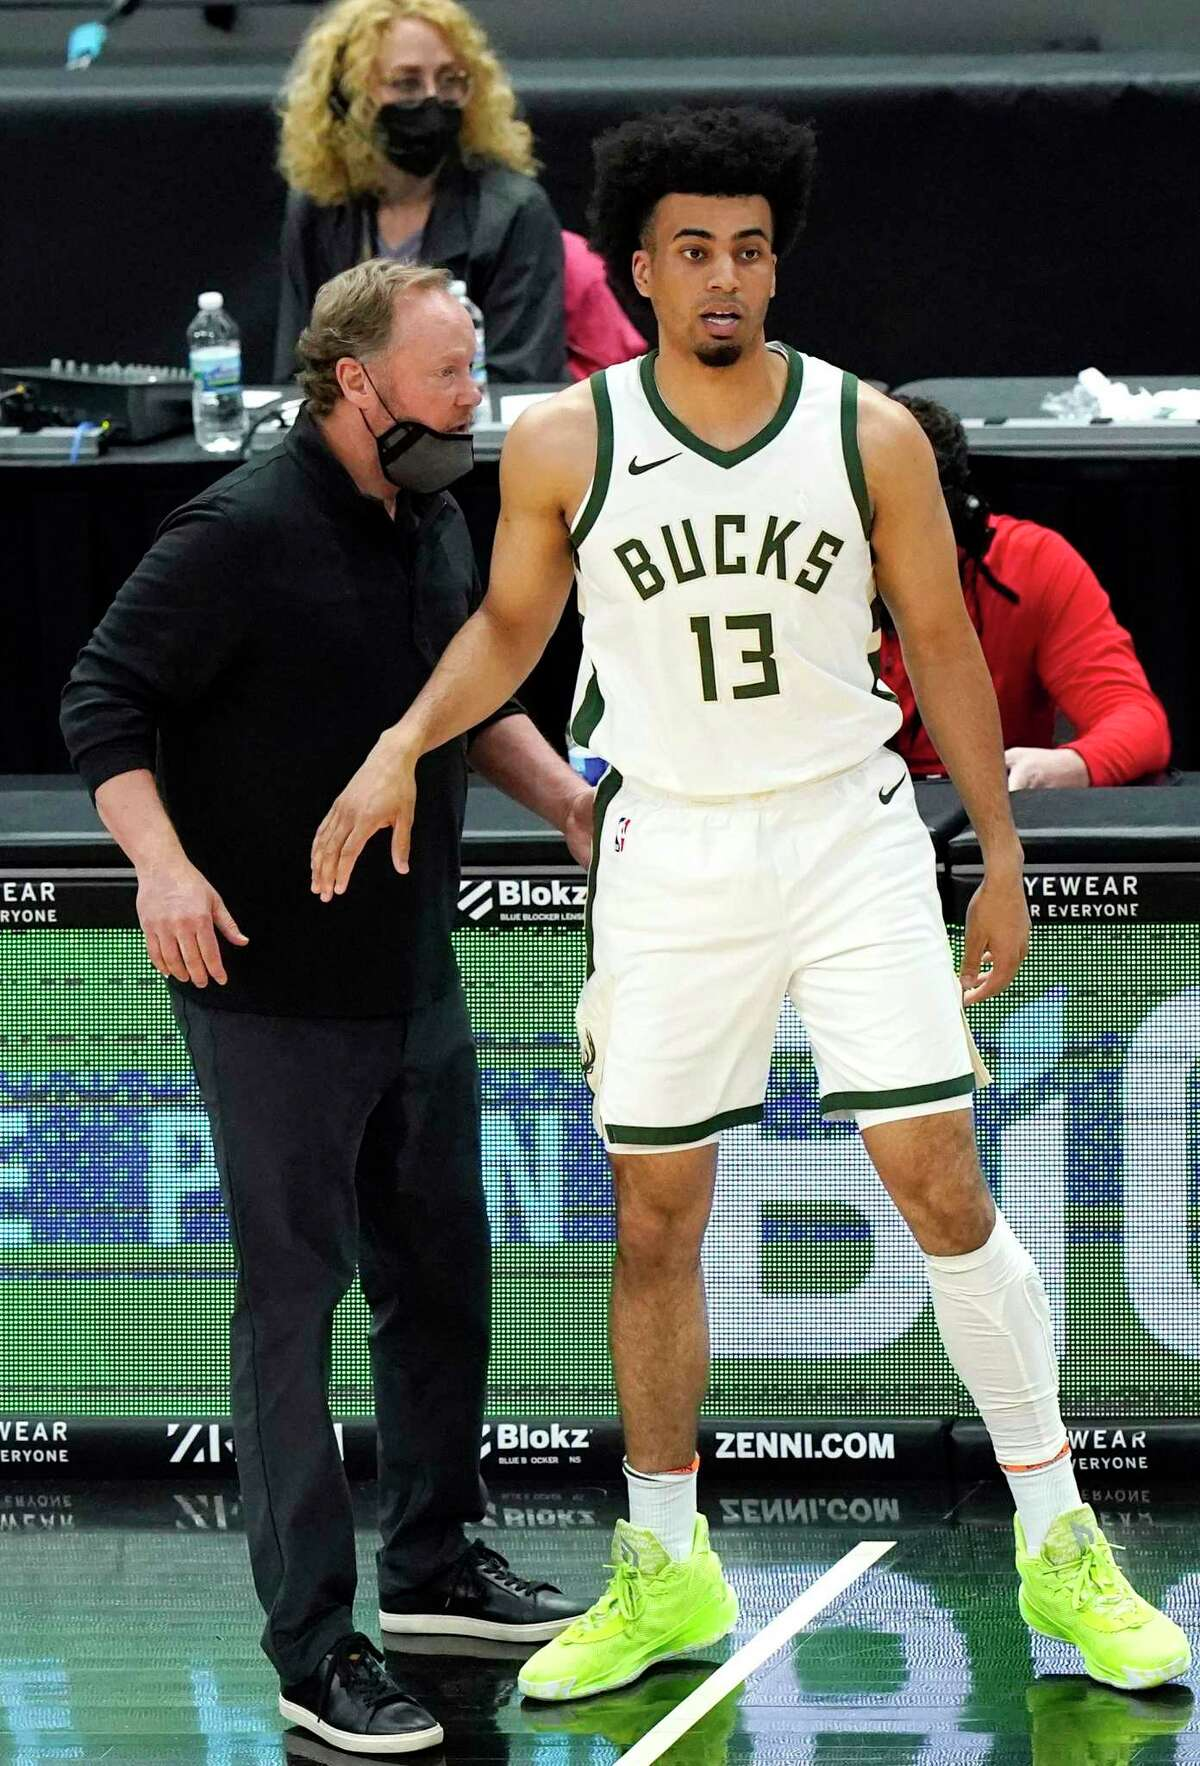 Bucks coach Mike Budenholzer, talking with fJordan Nwora, said his memories of working with former Spurs star Tim Duncan during his days as an assistant center around one word: winning.